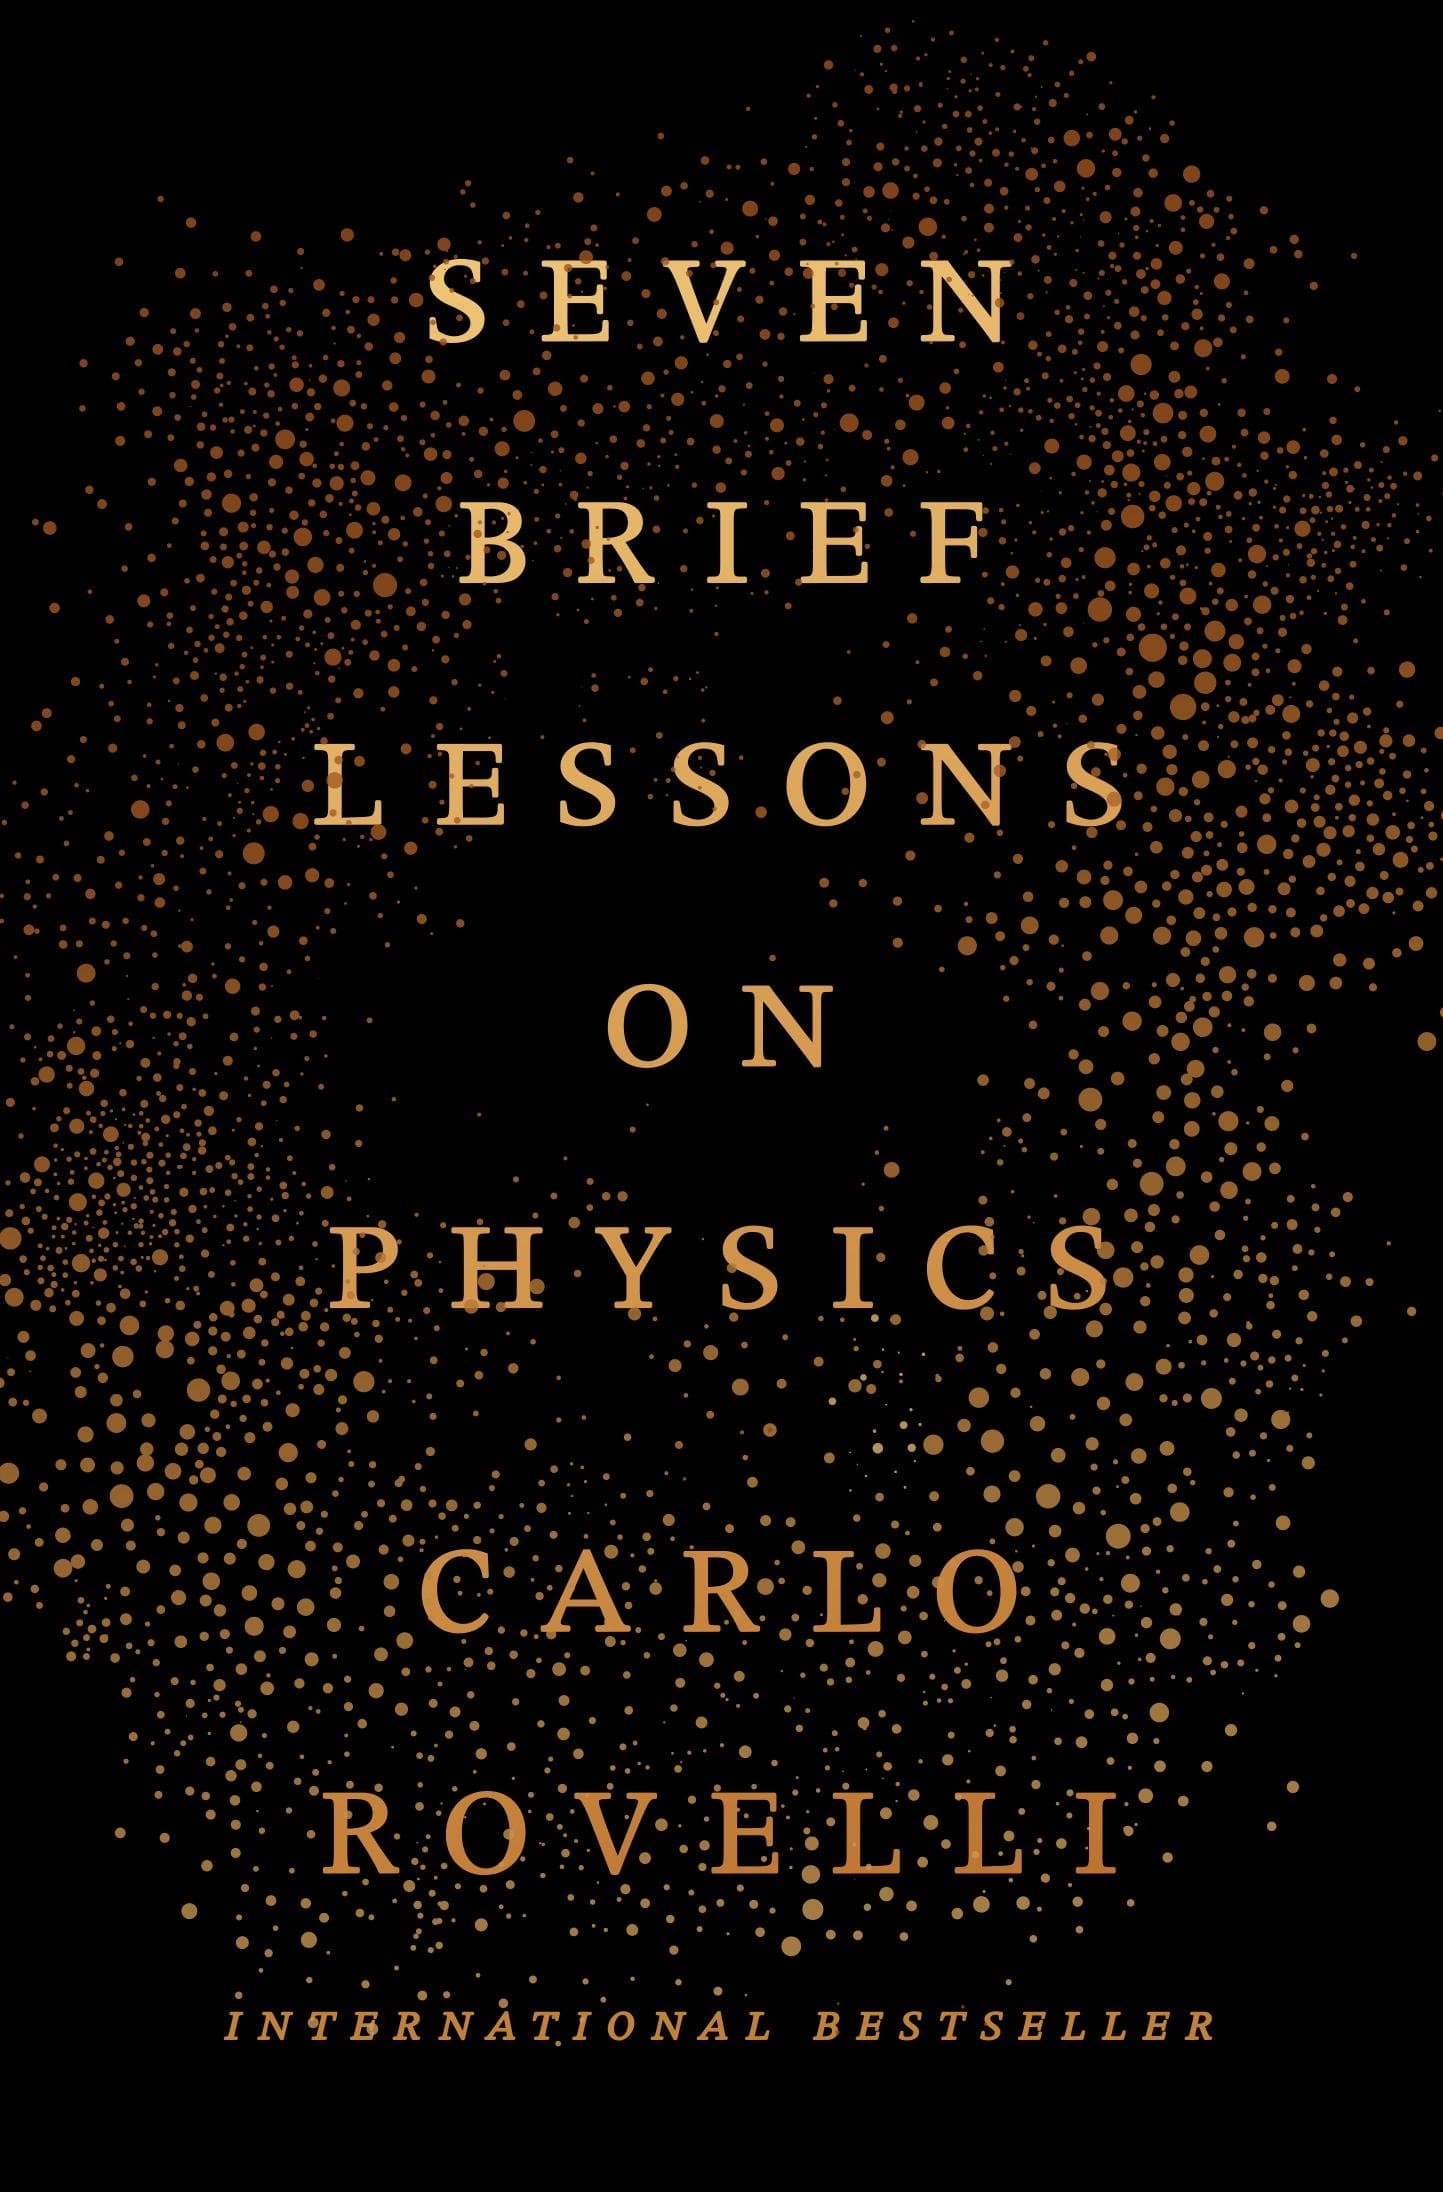 Today only: Seven Brief Lessons on Physics (Kindle eBook) $1.99 at Amazon